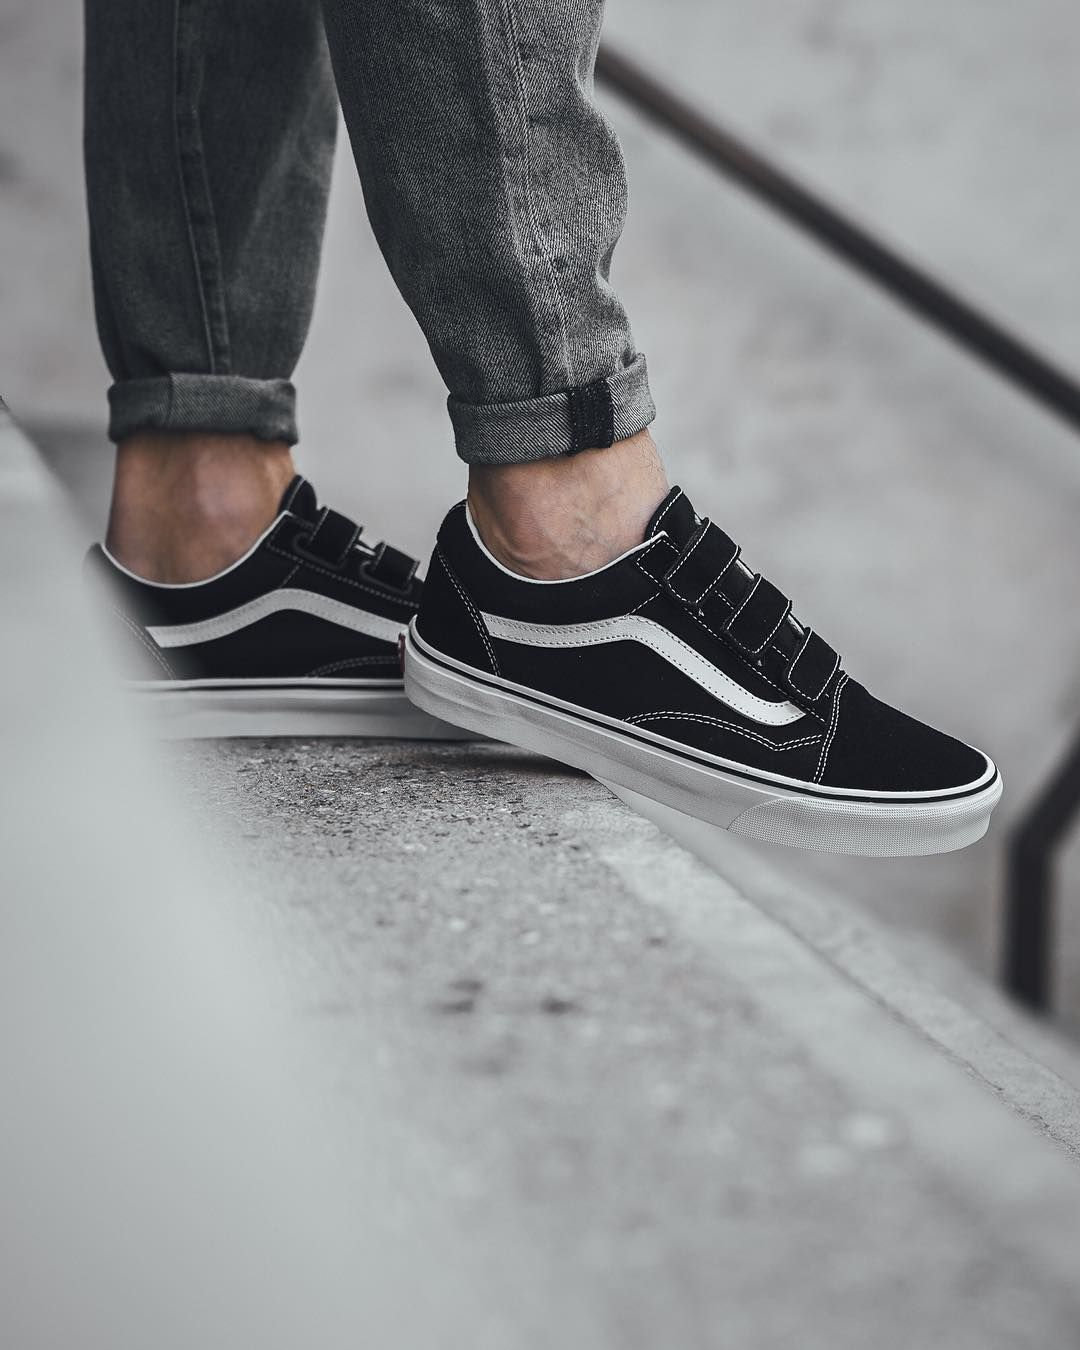 5bdc8401850 VANS Old Skool Velcro